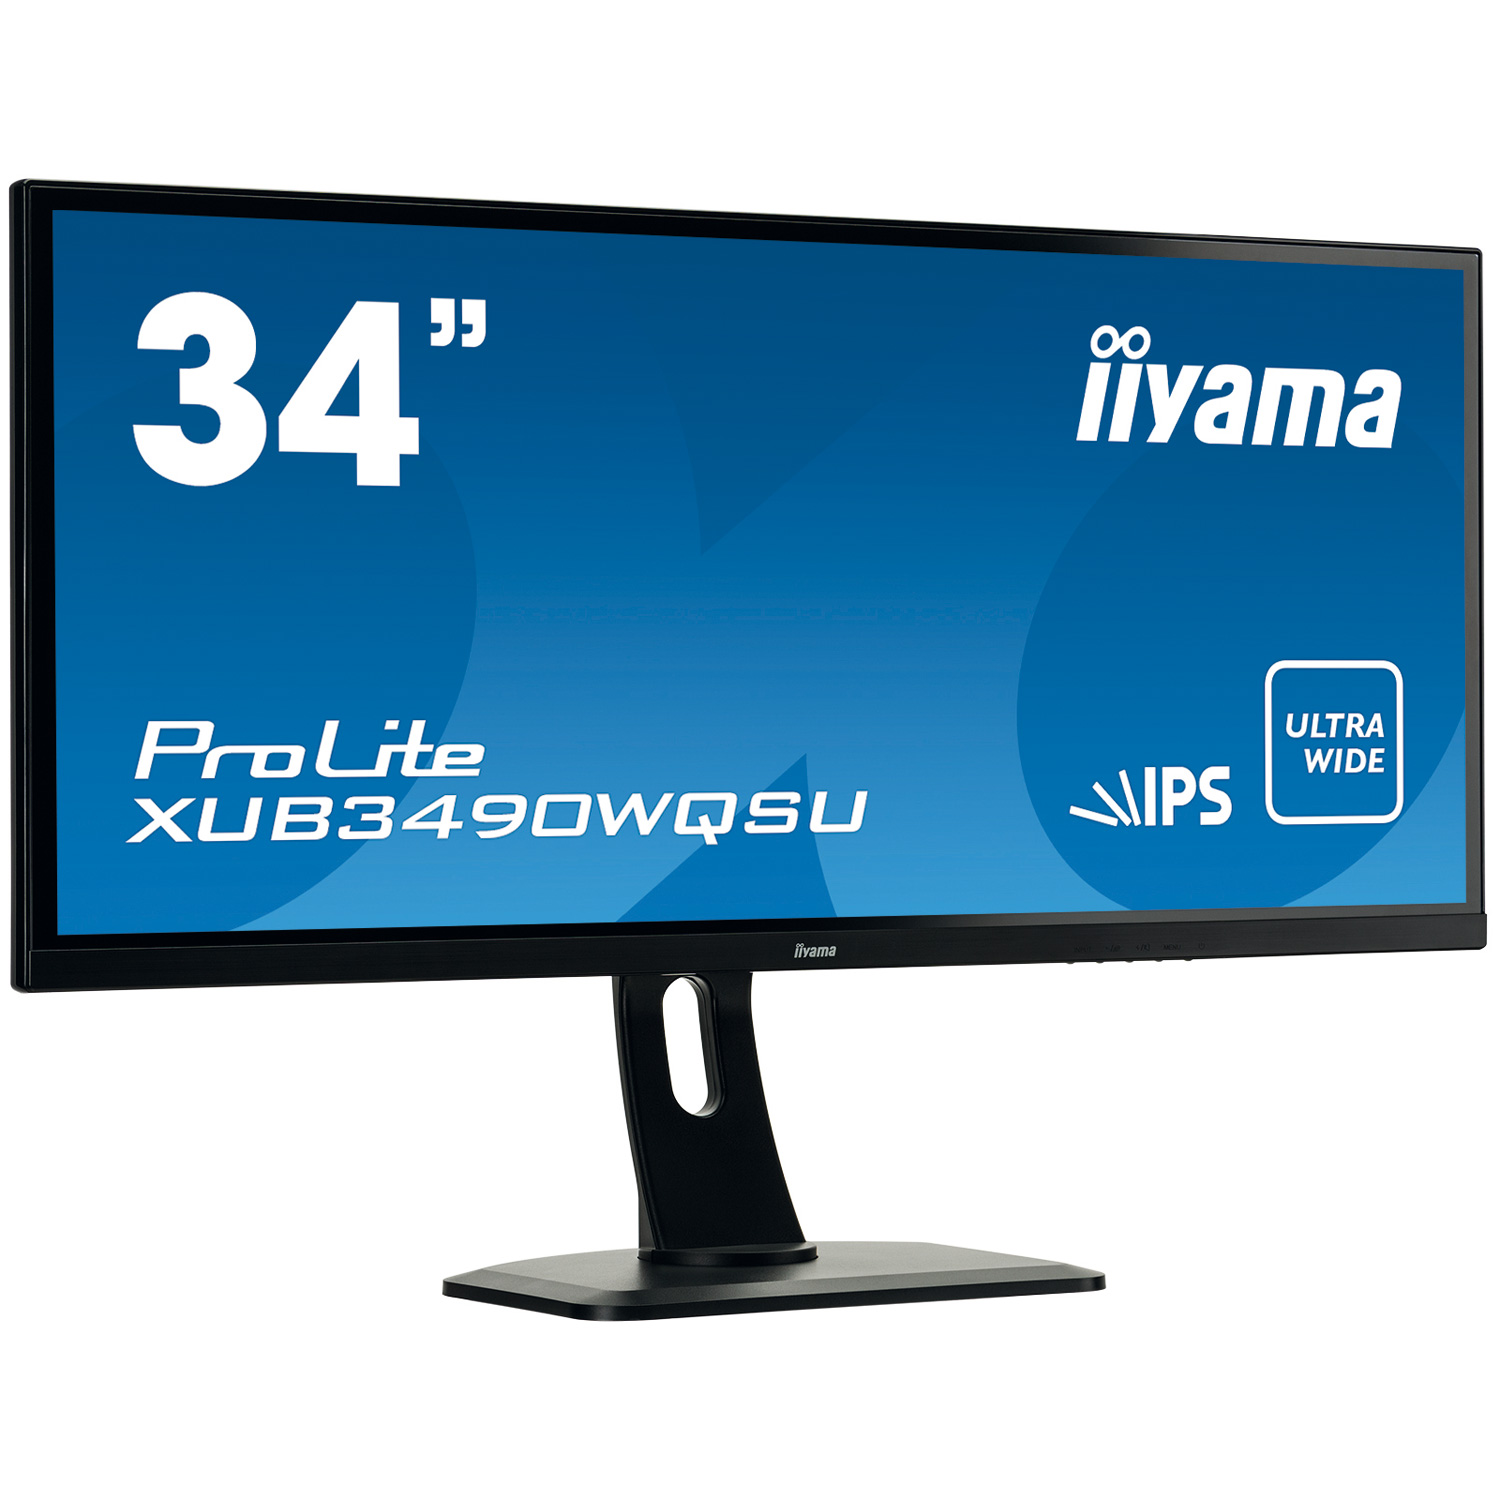 iiyama 34 led prolite xub3490wqsu b1 ecran pc iiyama sur. Black Bedroom Furniture Sets. Home Design Ideas